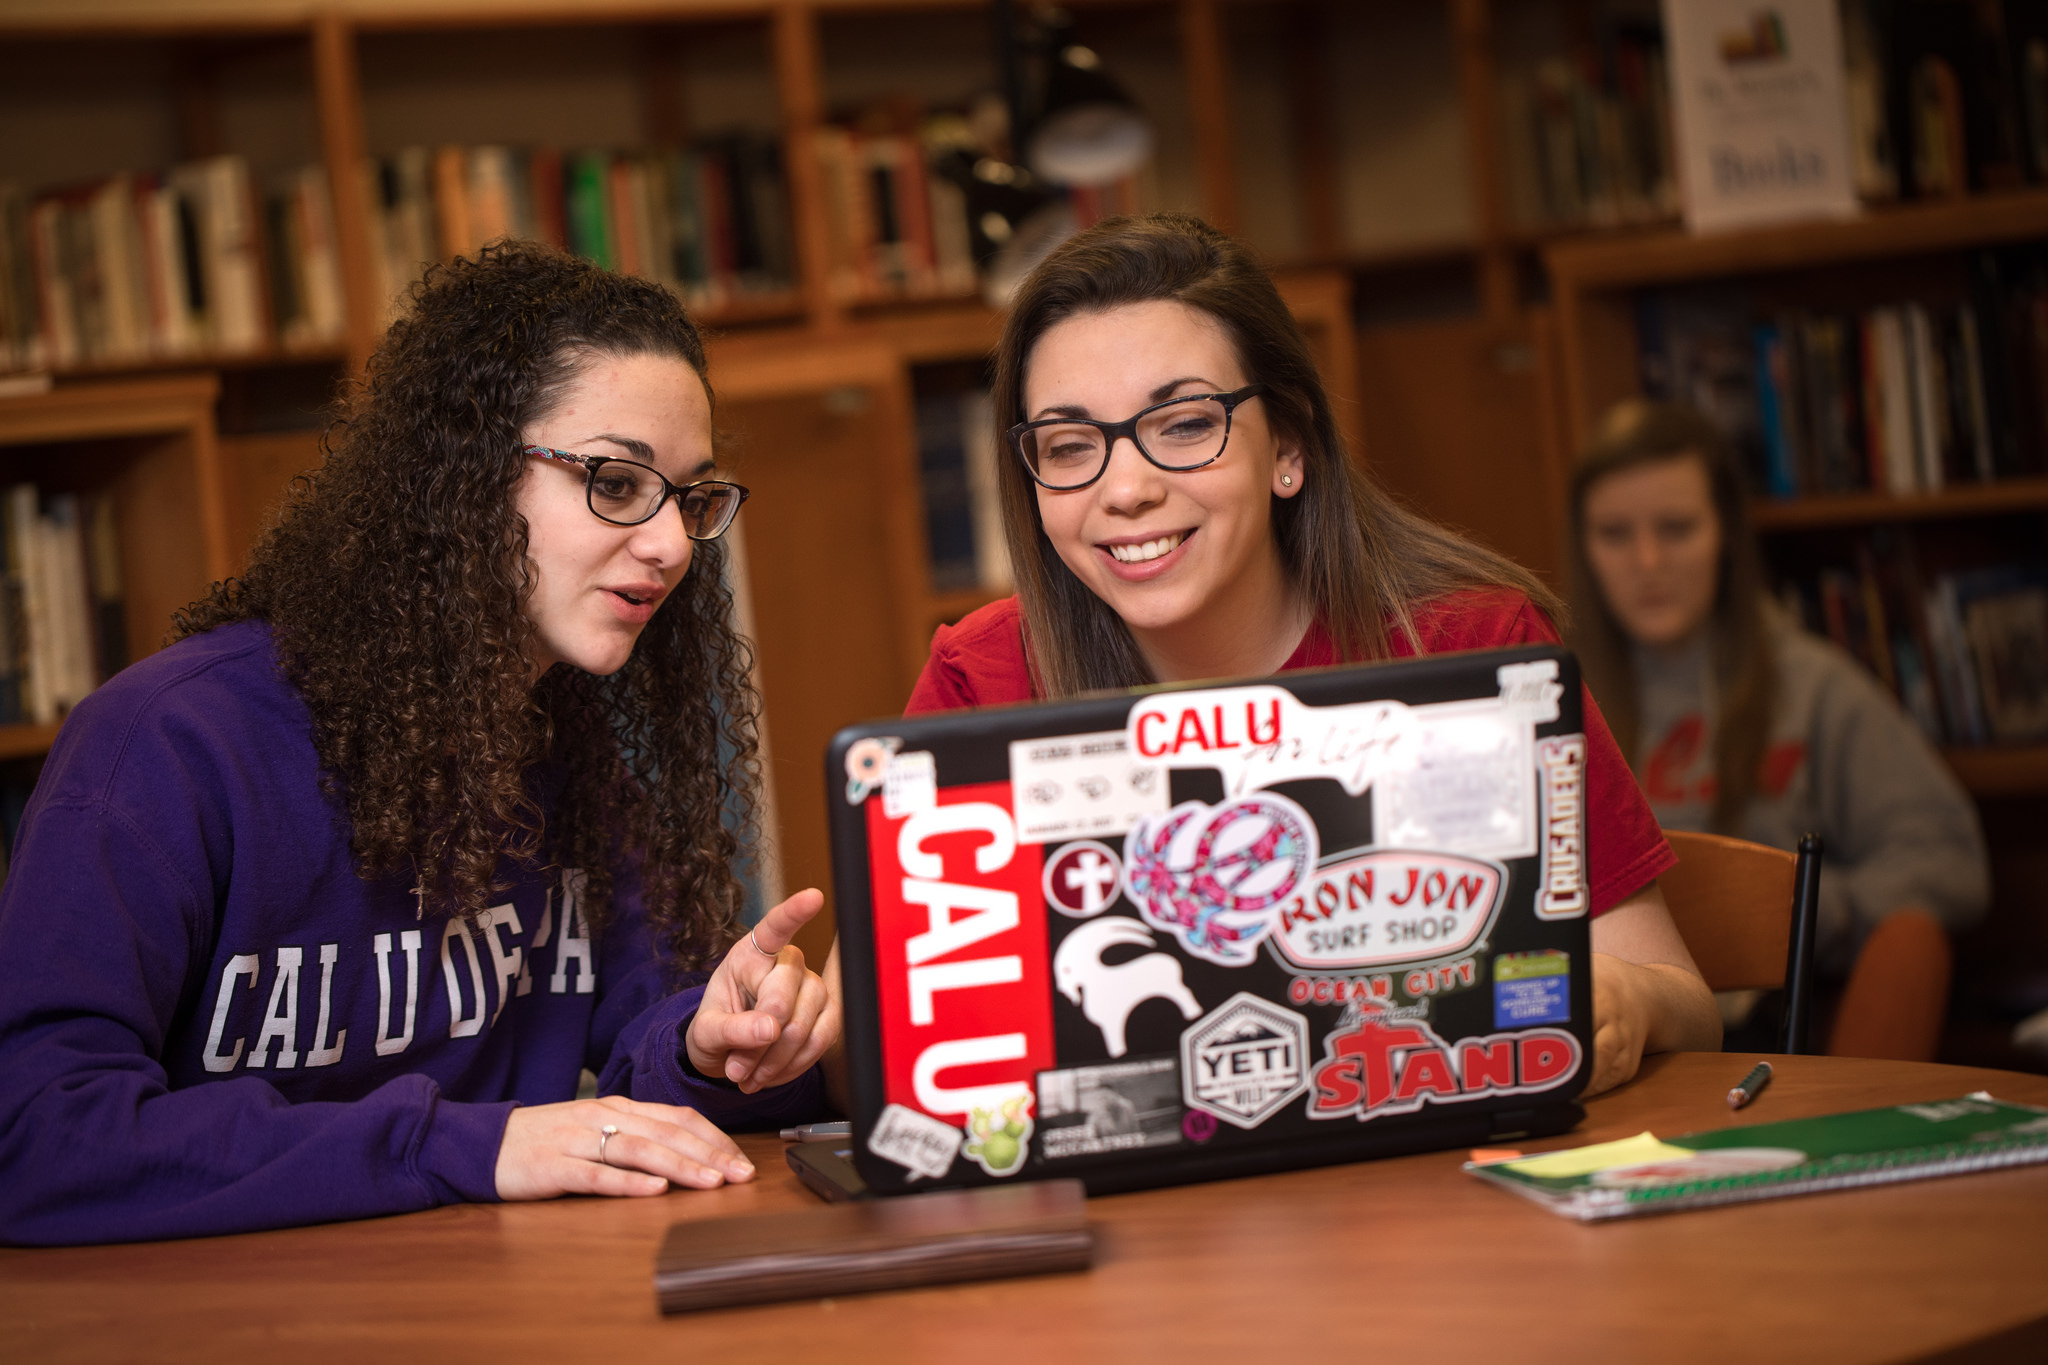 students work together at a computer laptop